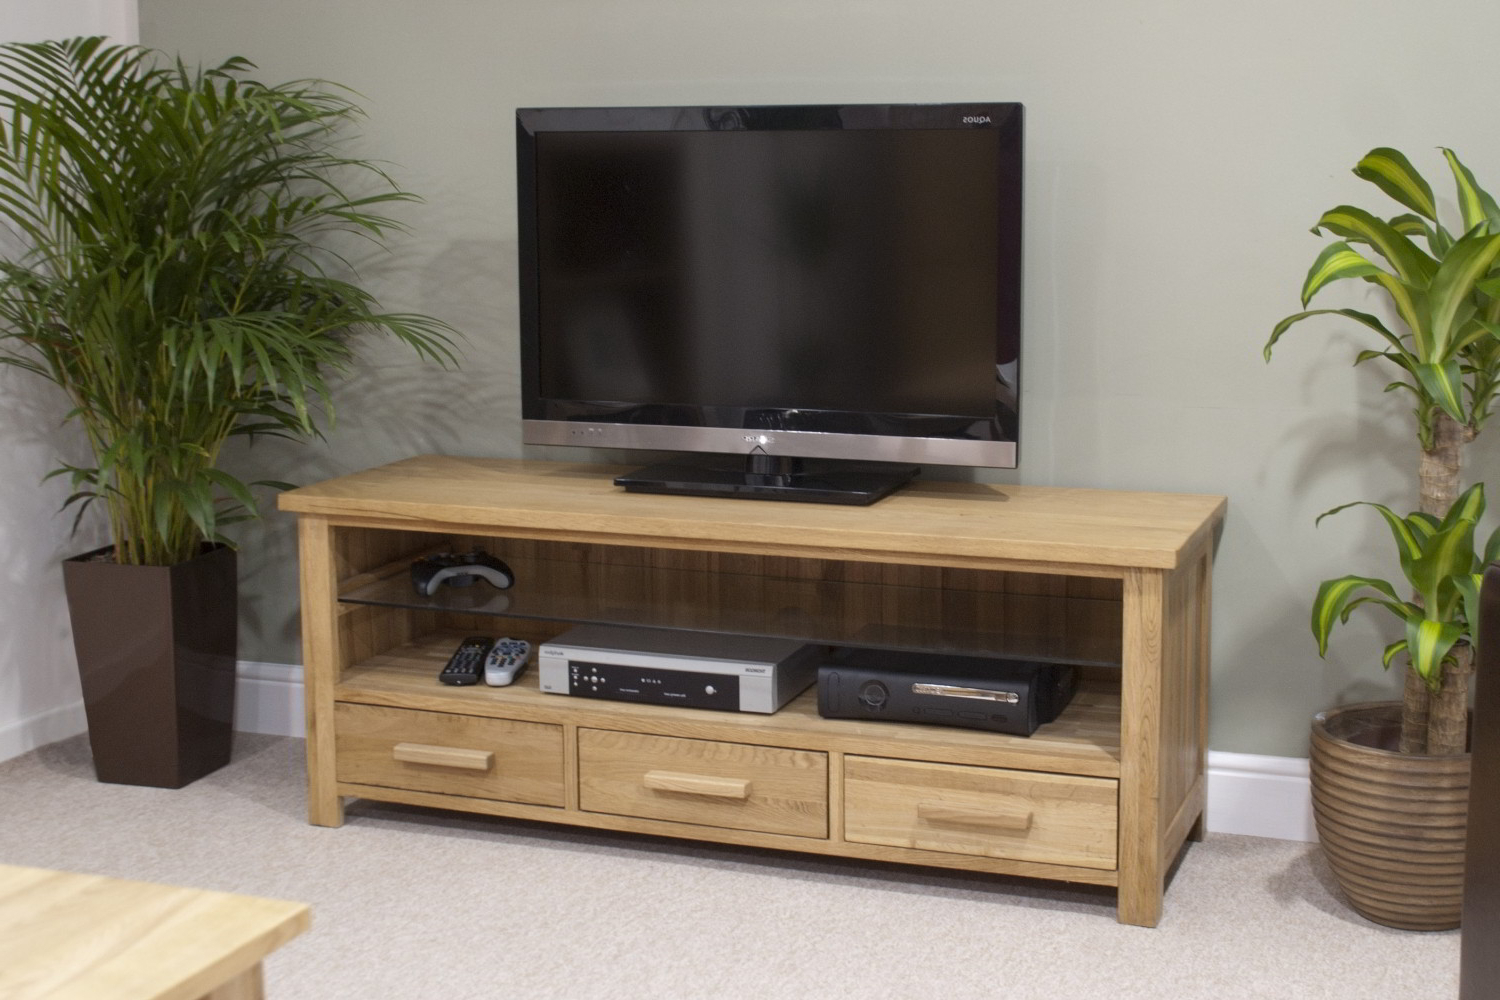 Eton Solid Oak Living Room Furniture Widescreen Tv Cabinet Stand In Most Current Oak Widescreen Tv Units (View 5 of 20)